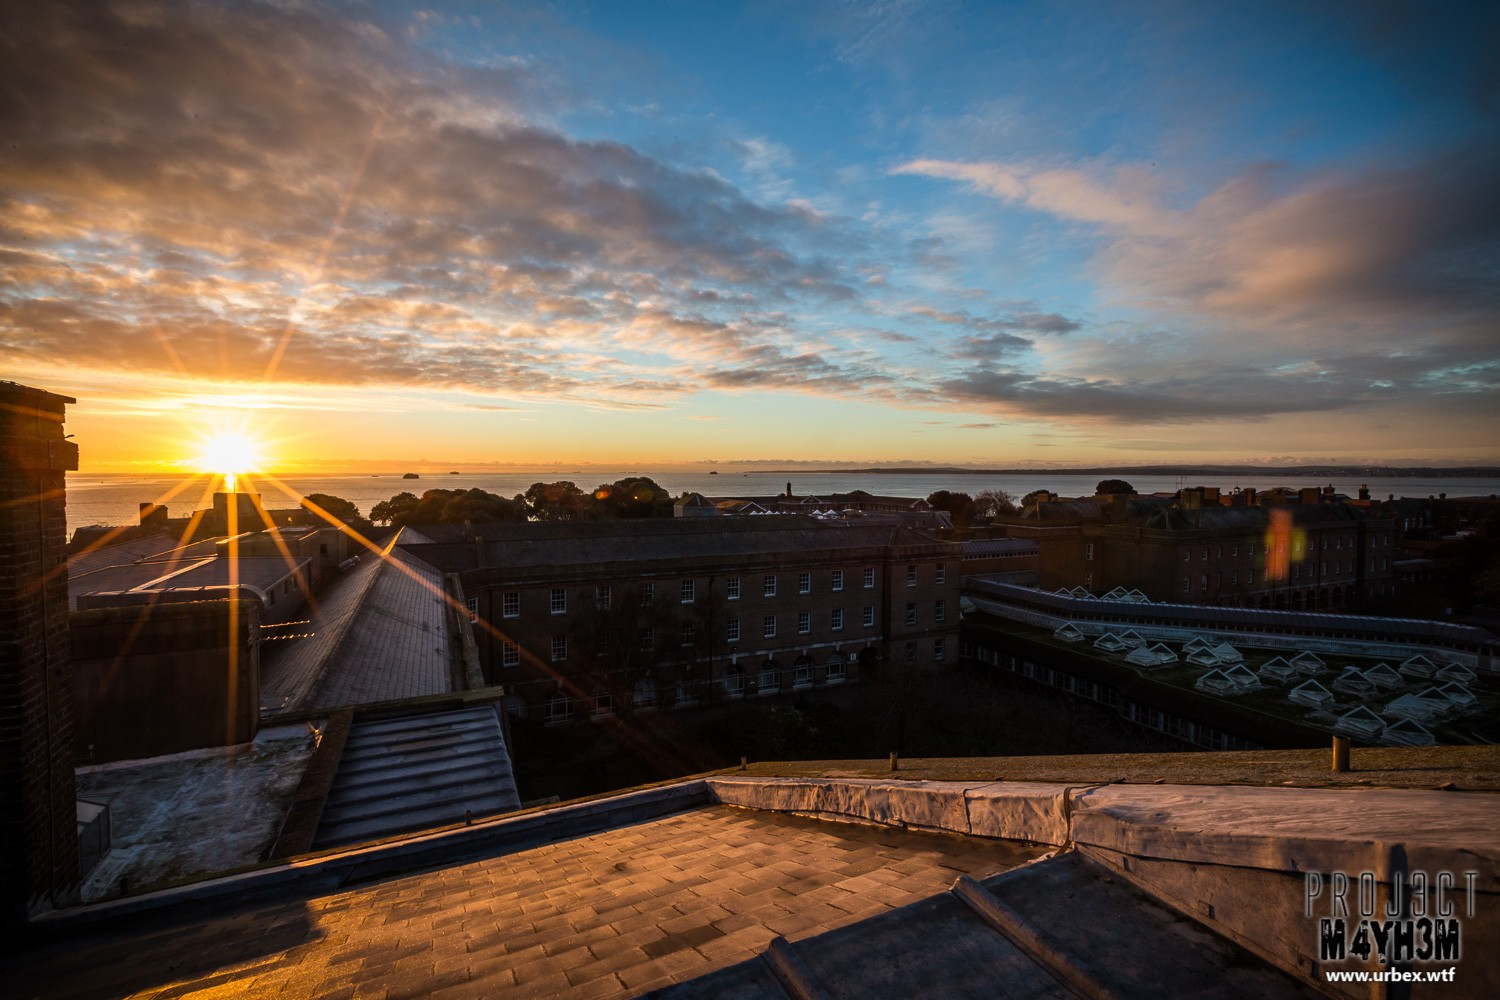 The Royal Hospital Haslar Rooftop at Sunrise